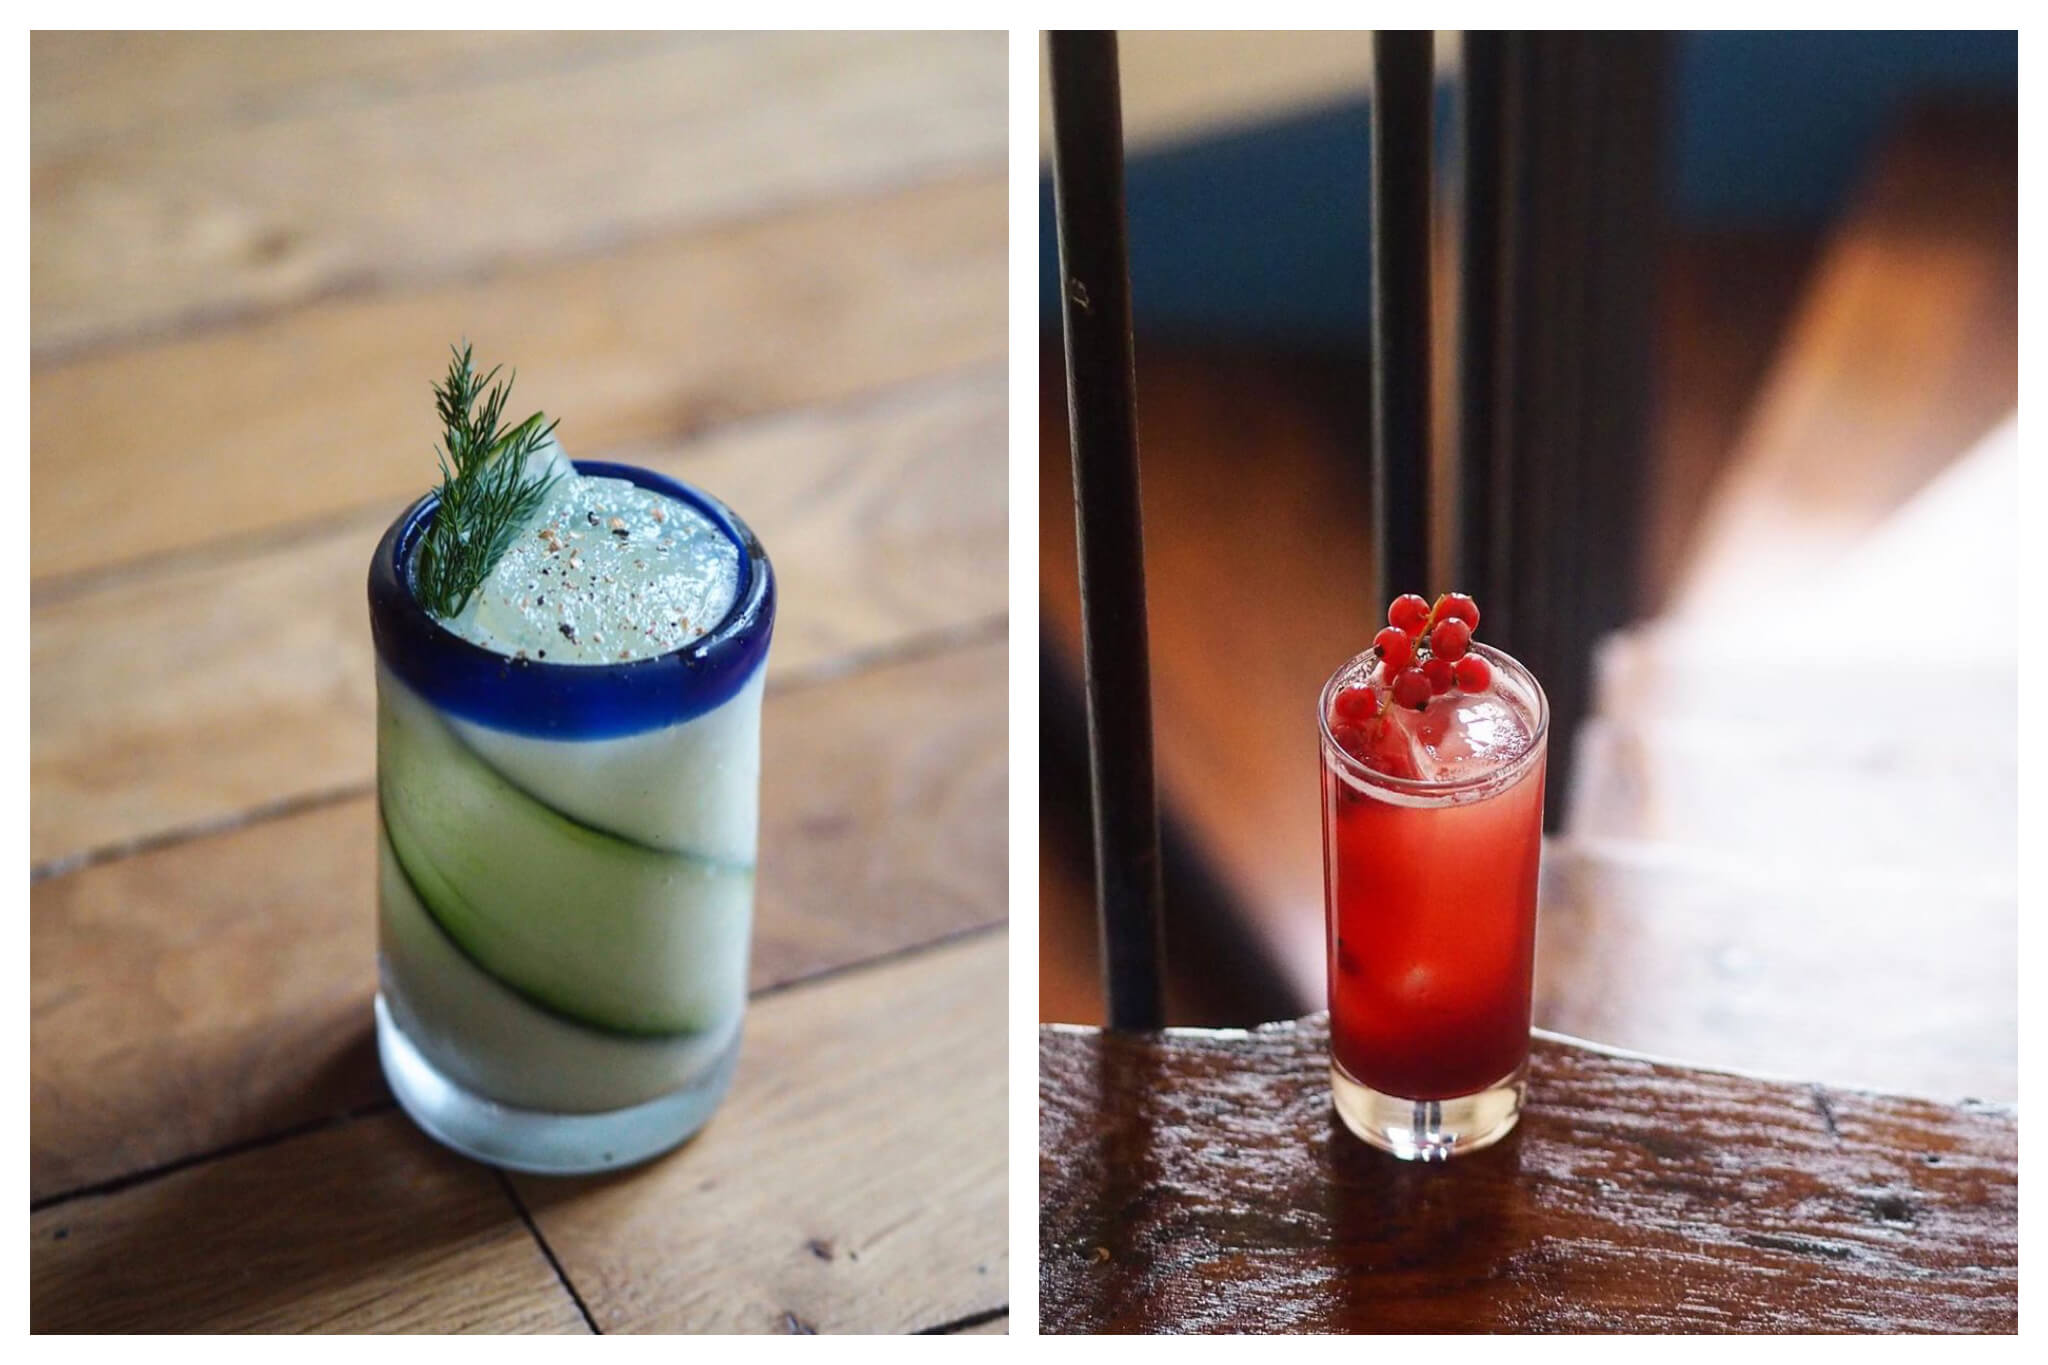 Left: a cocktail with a strip of cucumber inside on a wooden background.  Right: a red cocktail with berries on top sitting on a step of a wooden staircase.